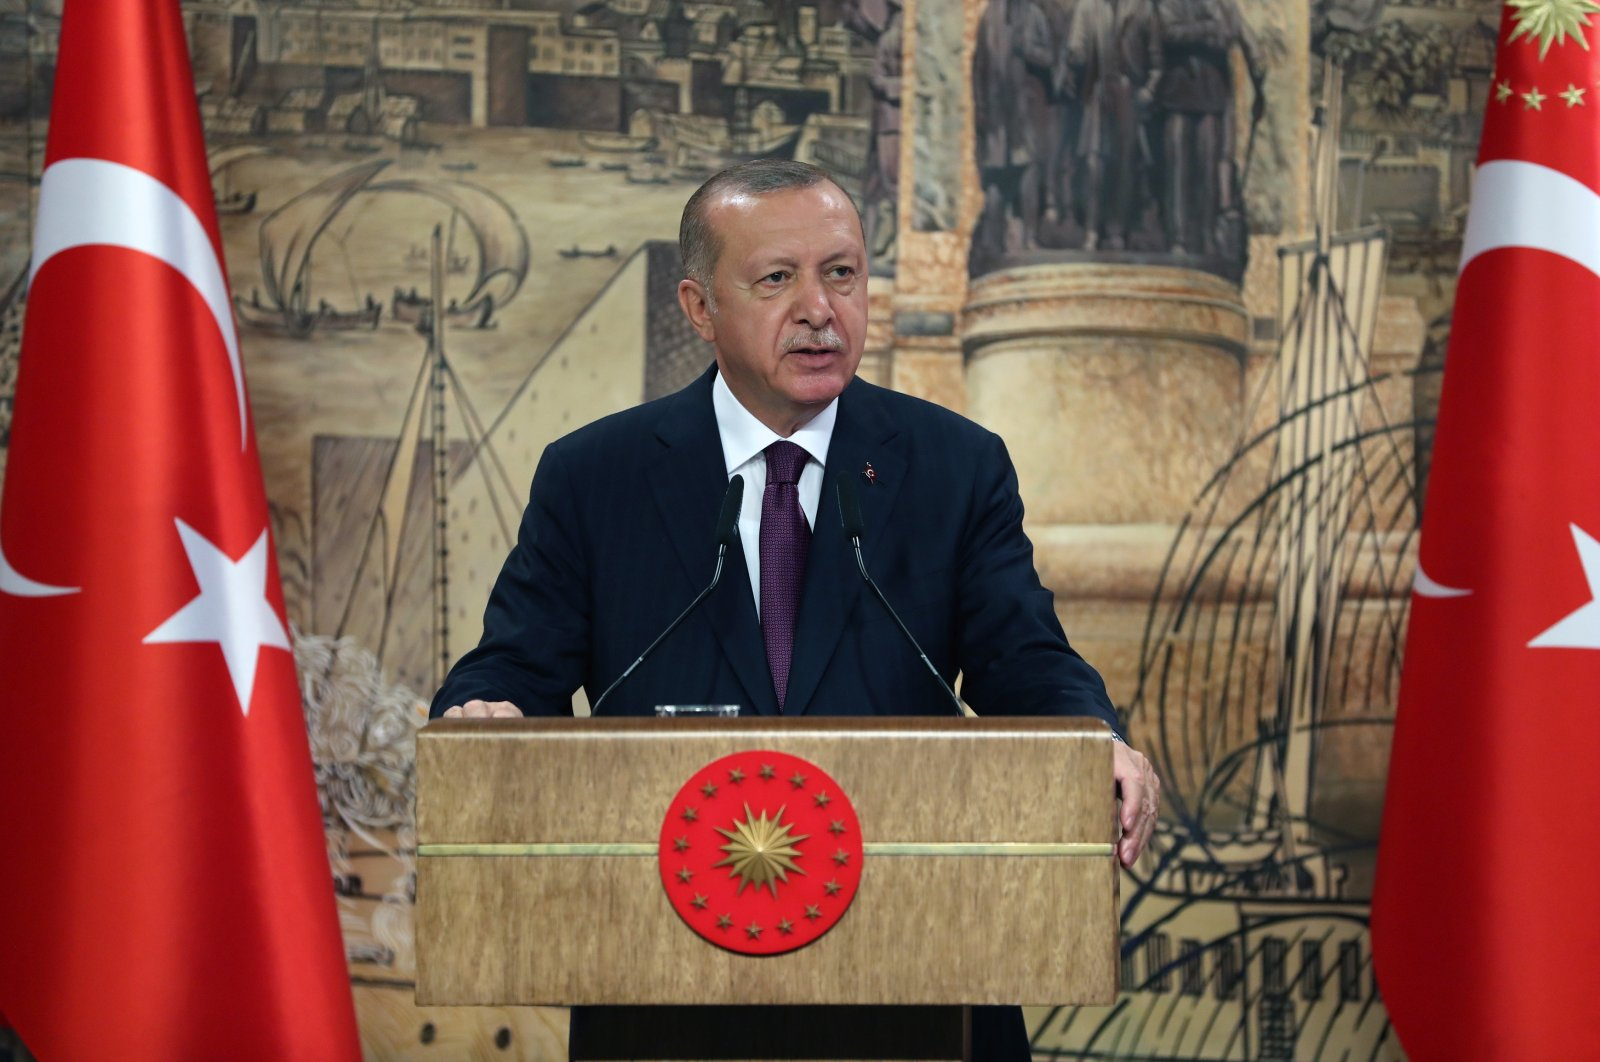 A handout photo made available by the Turkish Presidency Press Office shows Turkish President Recep Tayyip Erdoğan speaking during a press conference as he announces the biggest natural gas discovery in history in Istanbul, Turkey, Aug. 21, 2020. (EPA via Turkish Presidency Press Office)